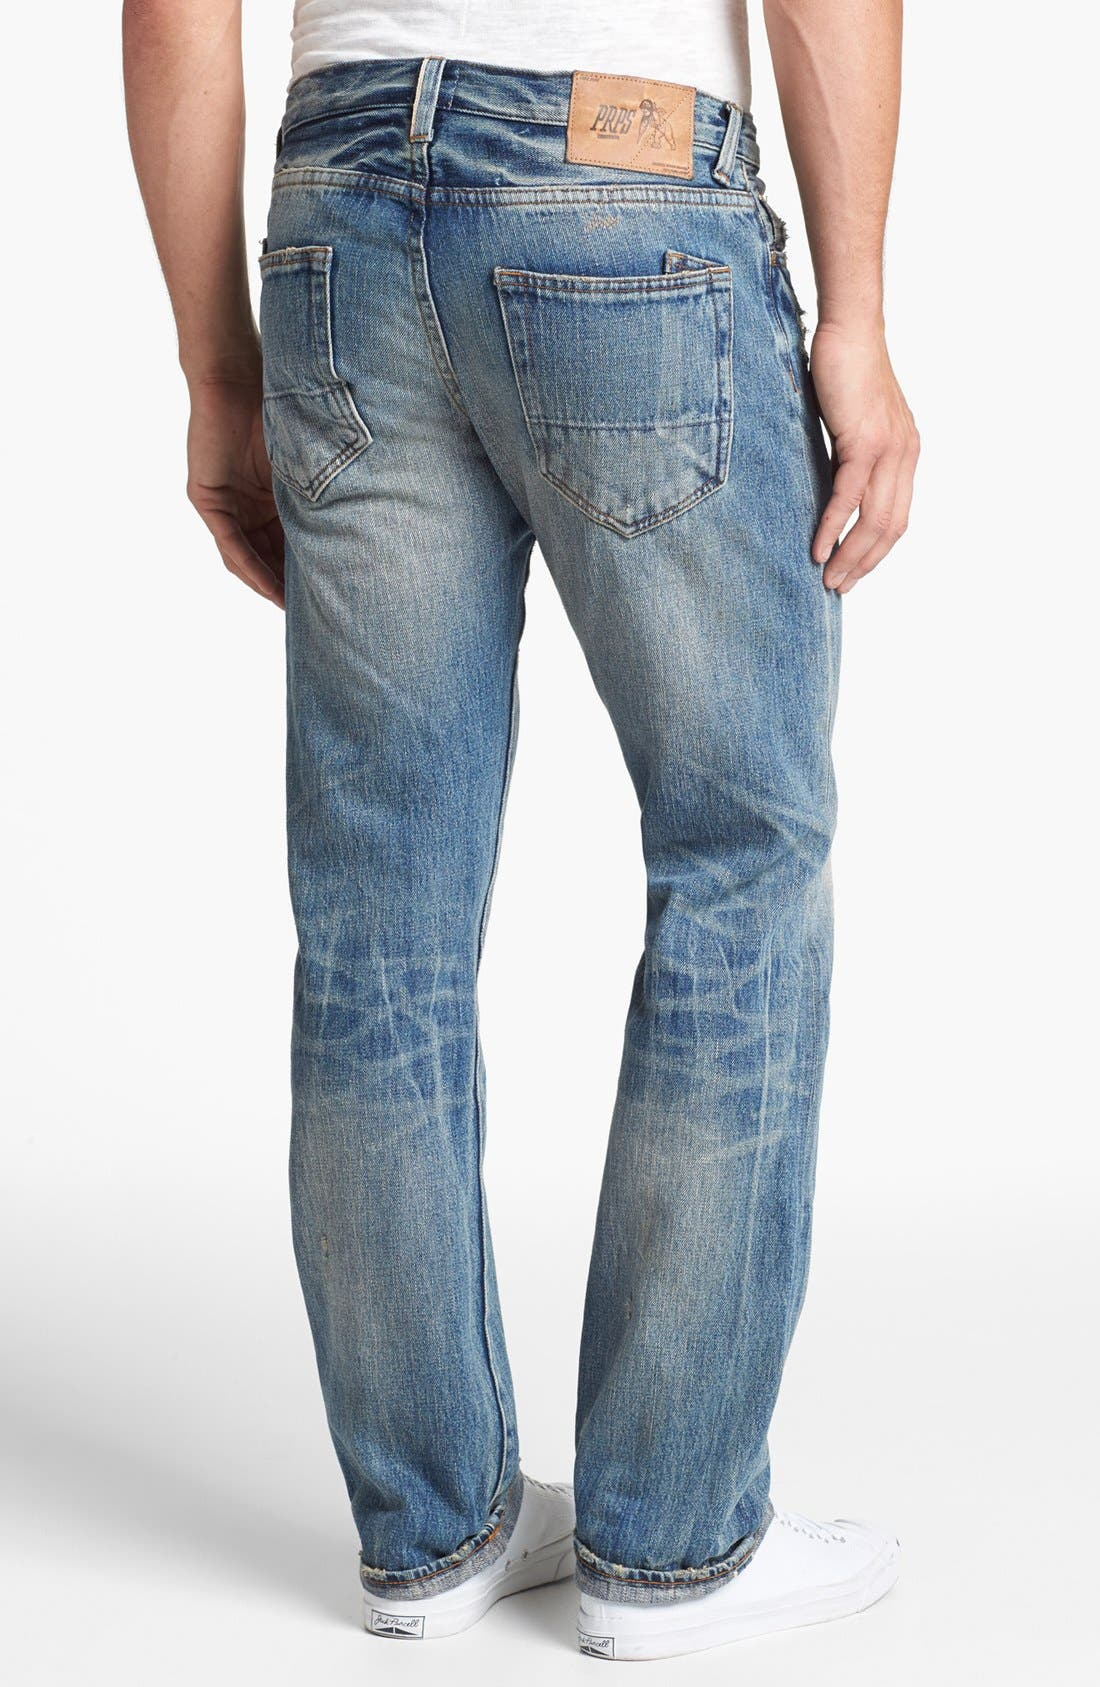 'Barracuda' Straight Leg Selvedge Jeans,                             Alternate thumbnail 2, color,                             450